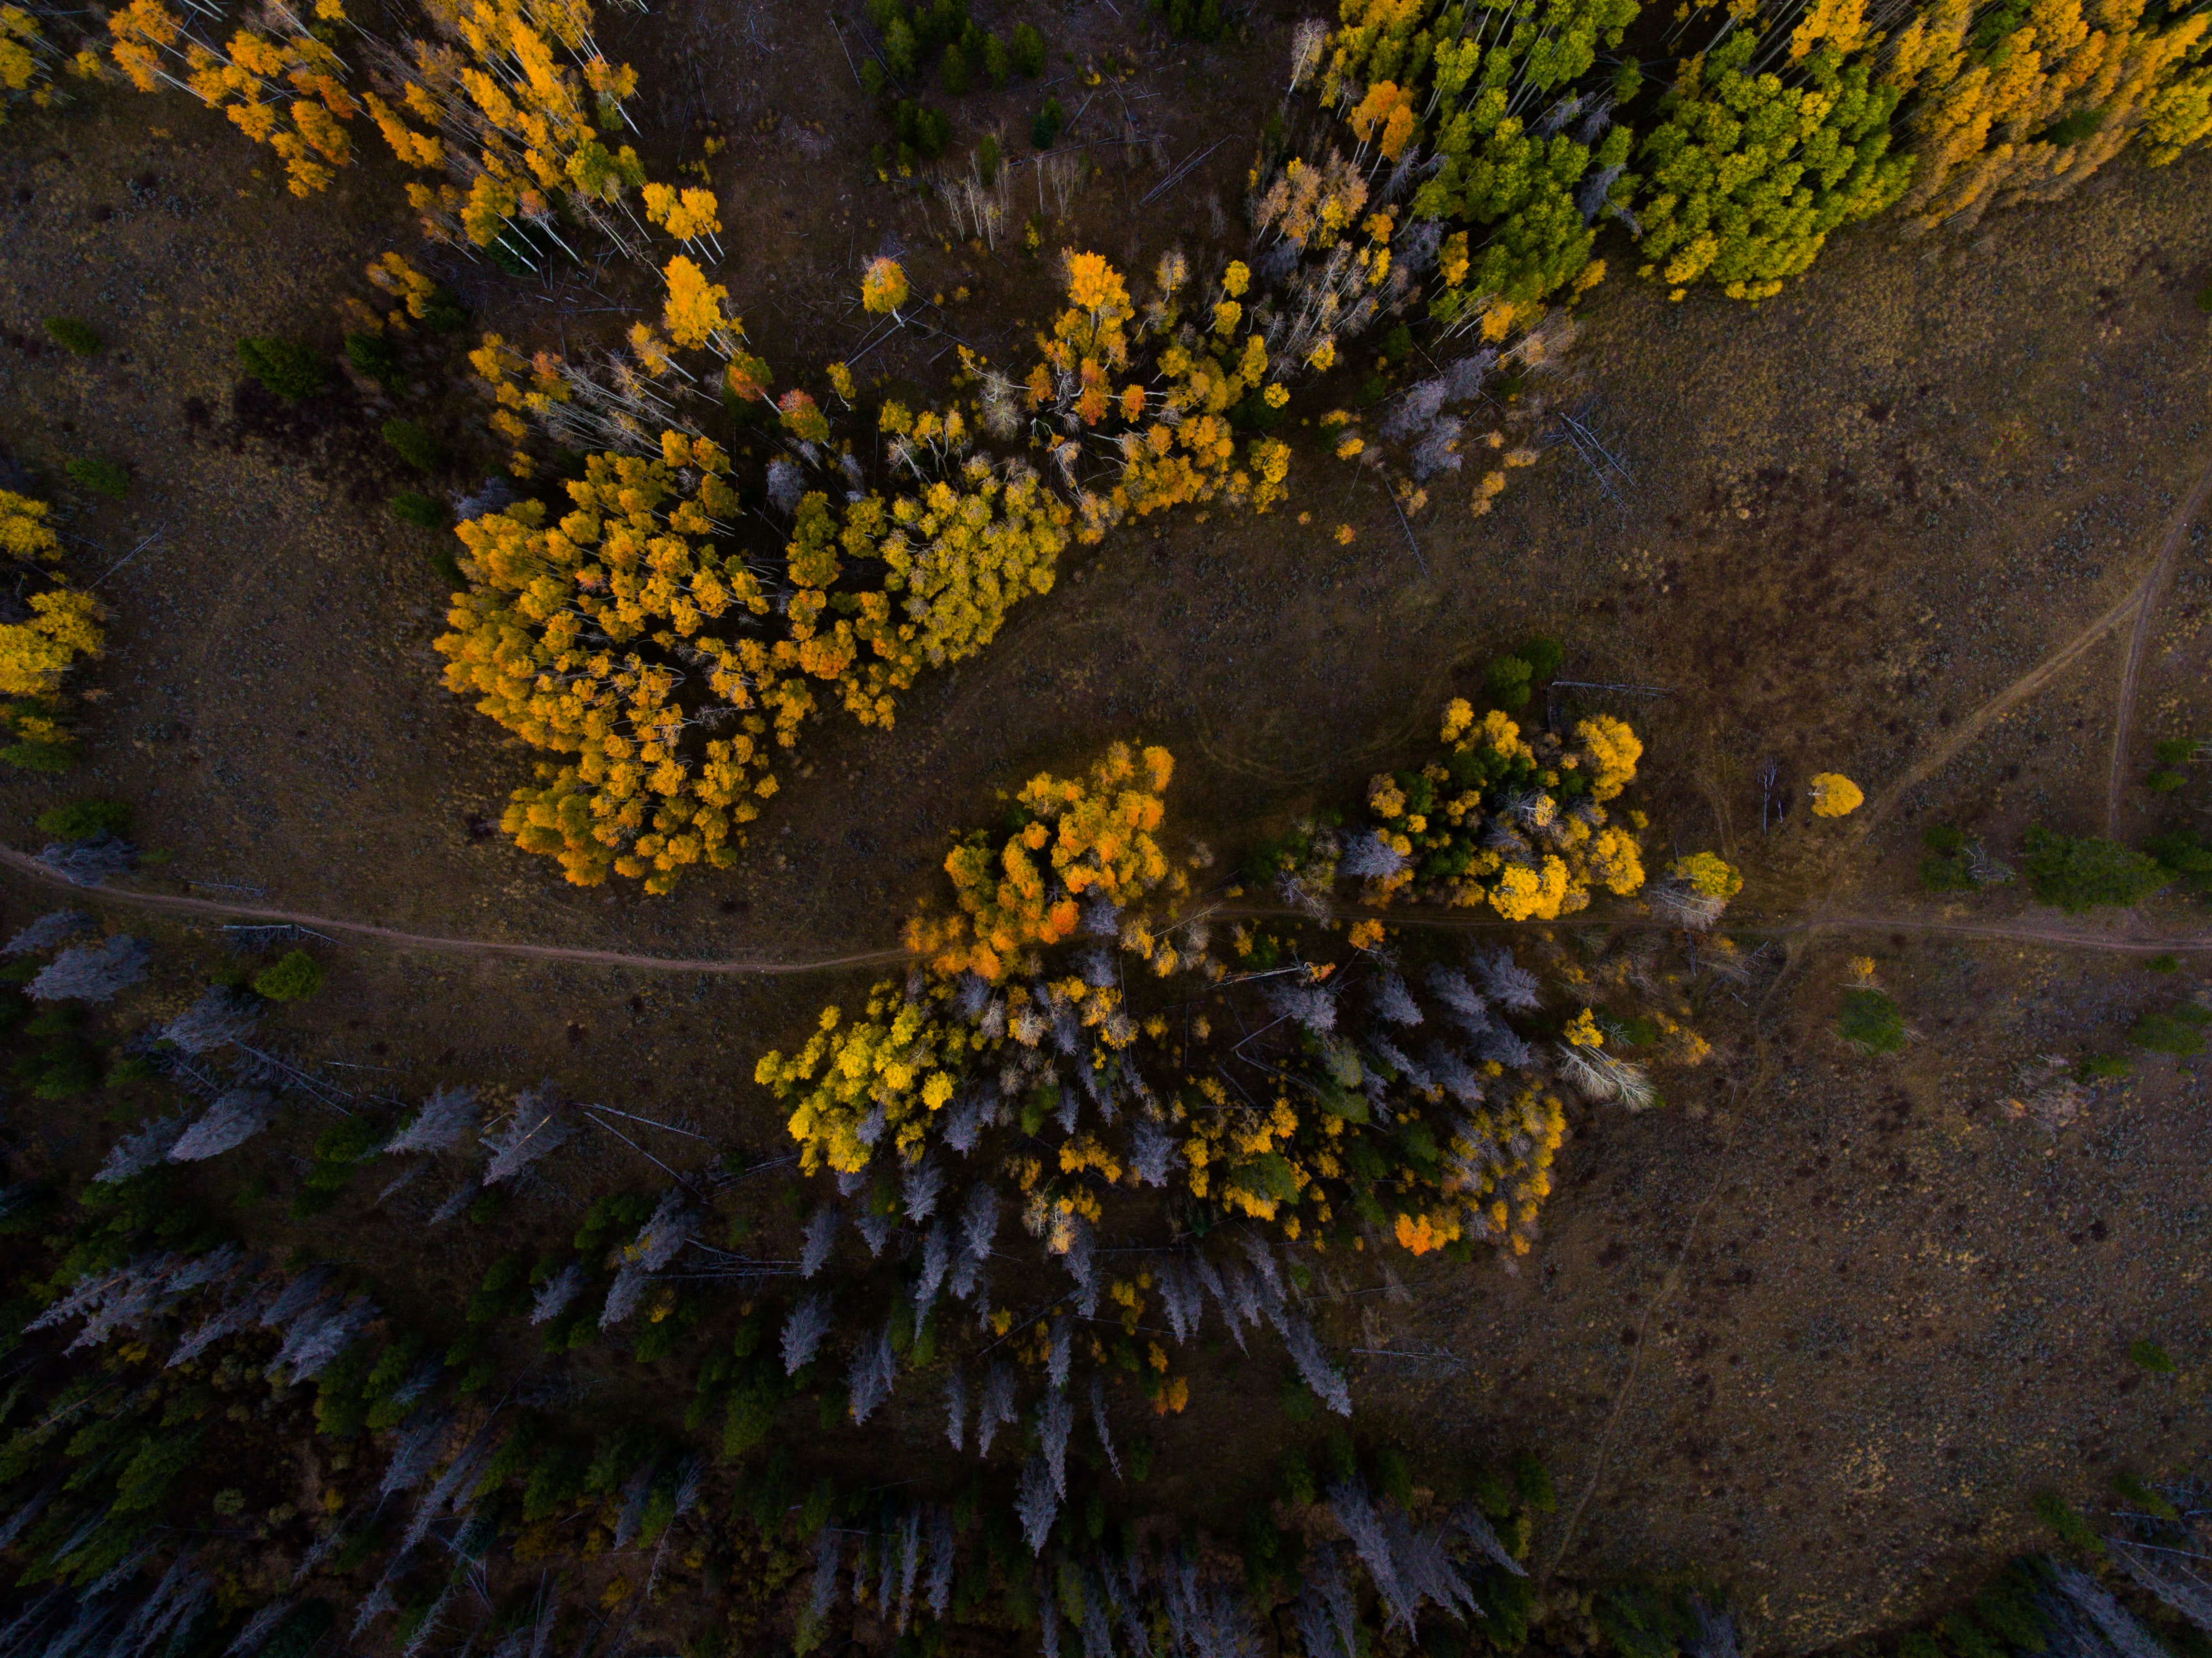 A drone shot of footpaths near clumps of yellow and gray trees in Silverthorne